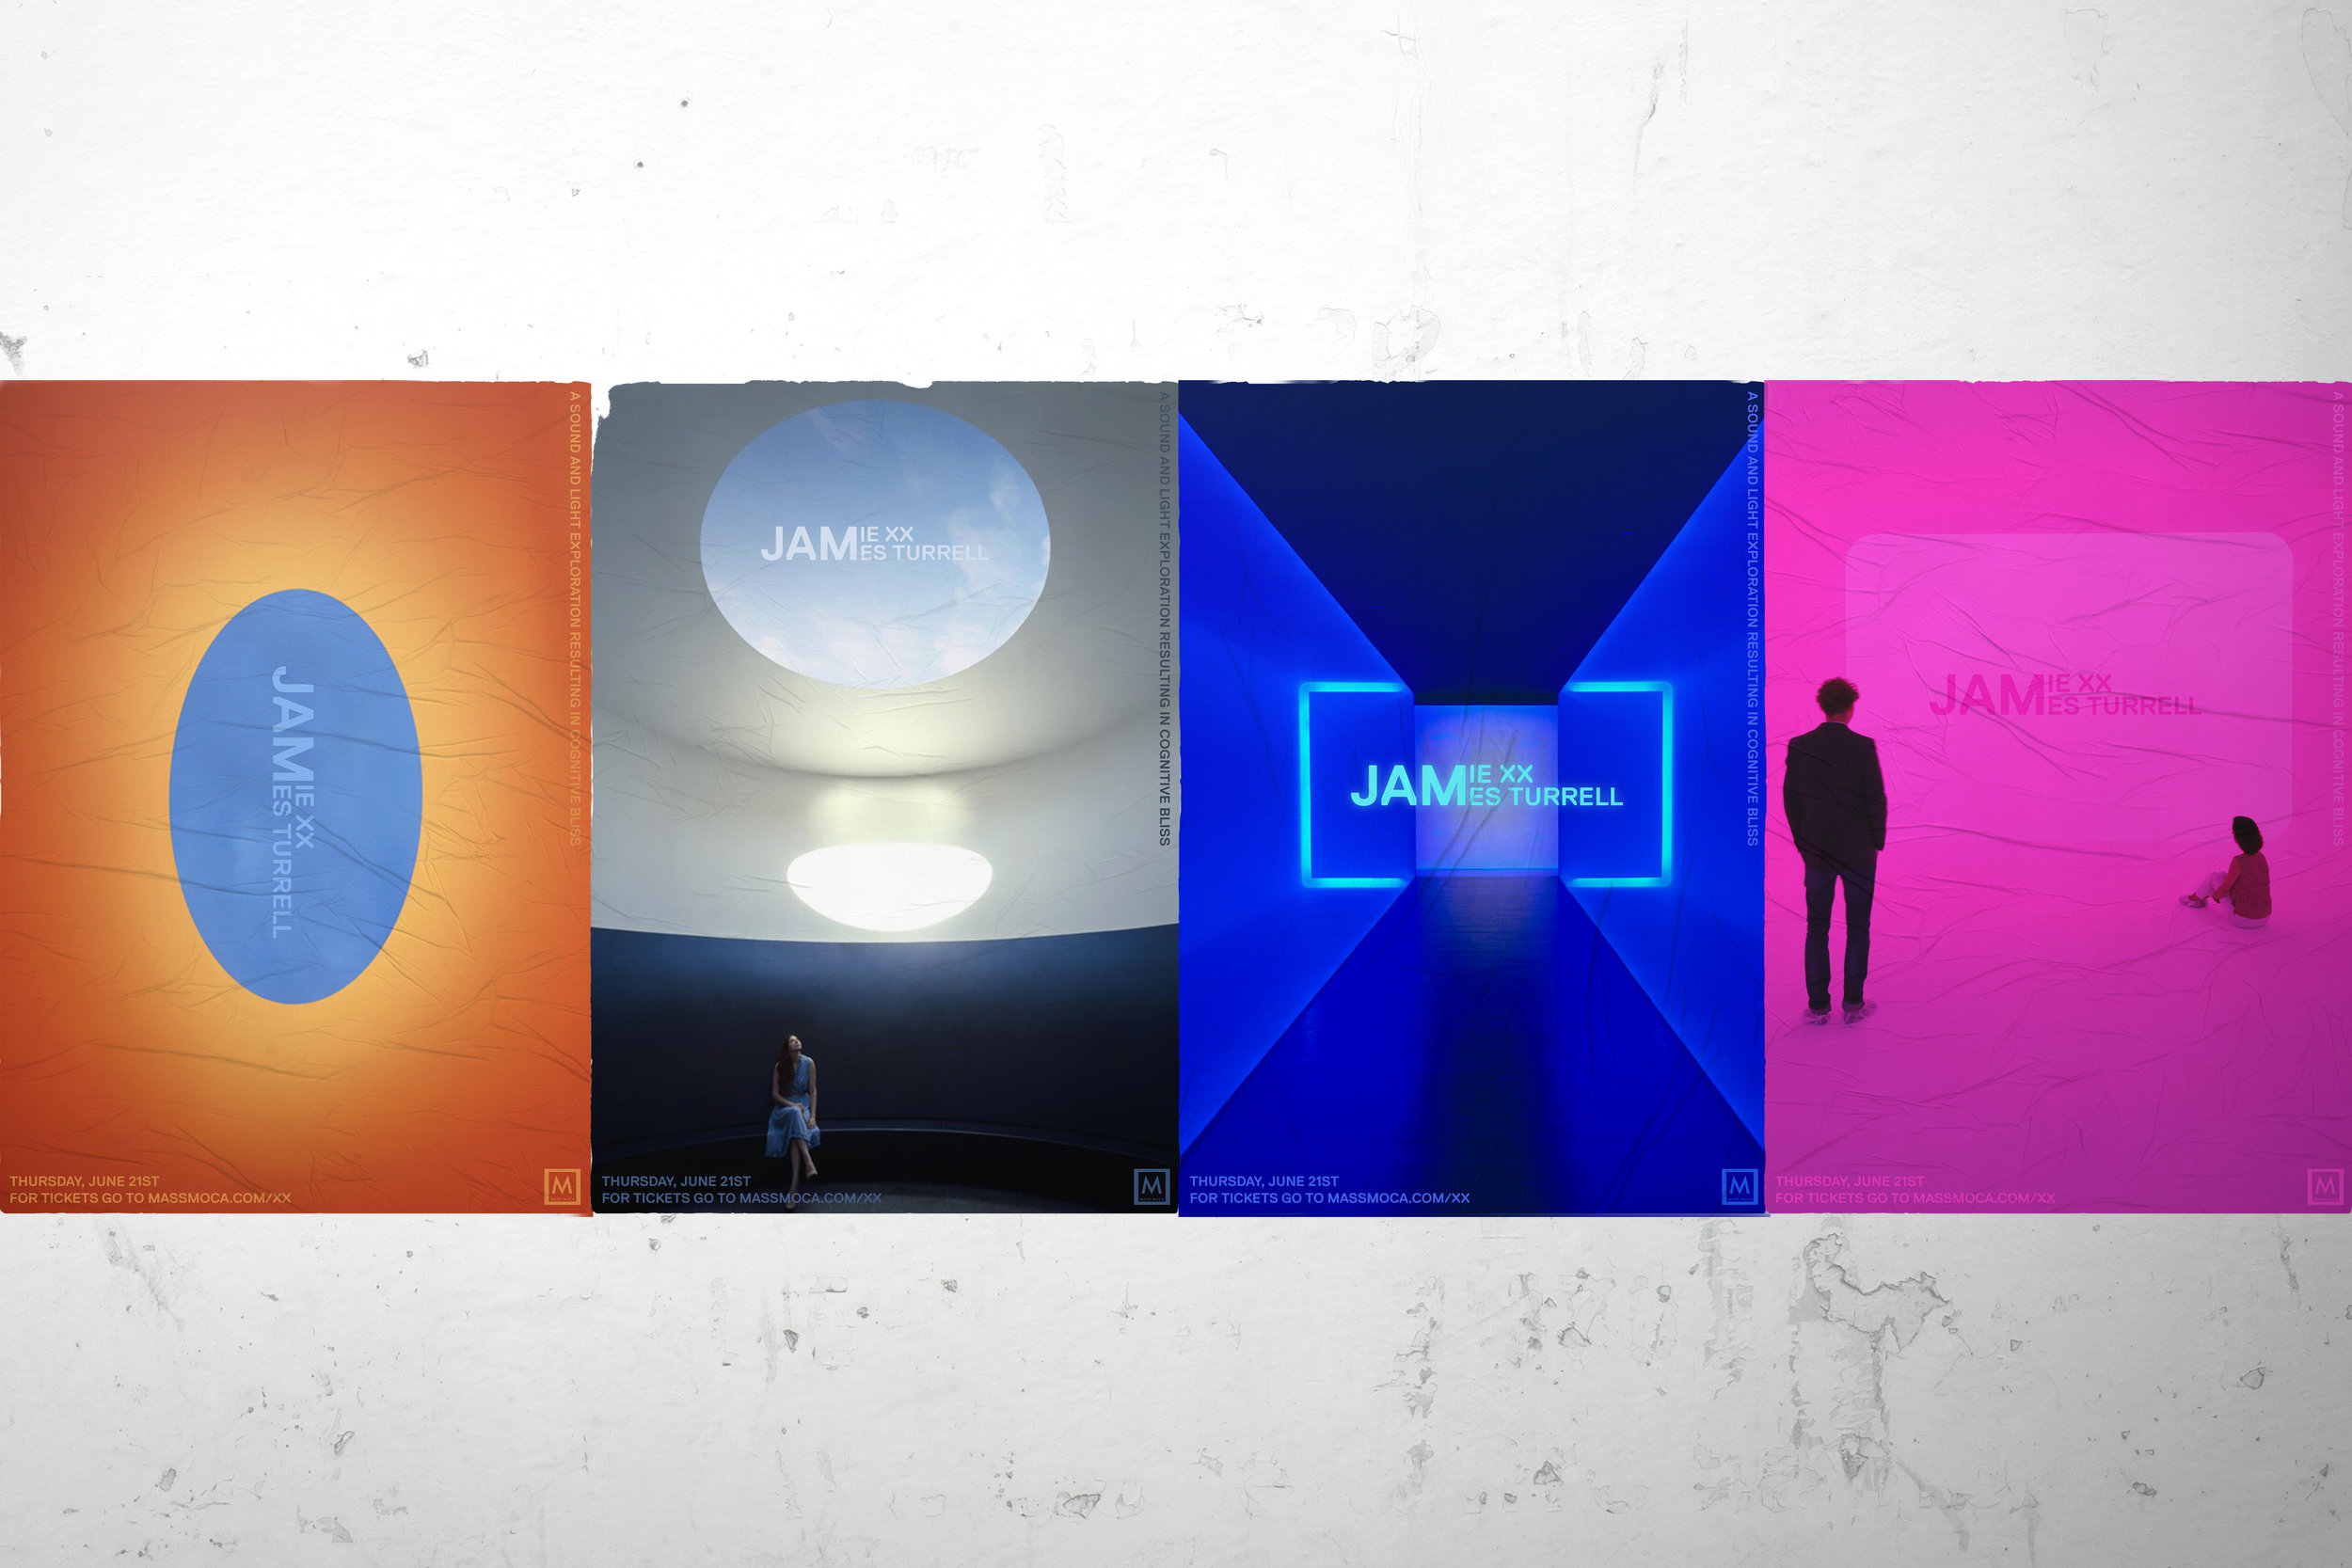 Promotional posters